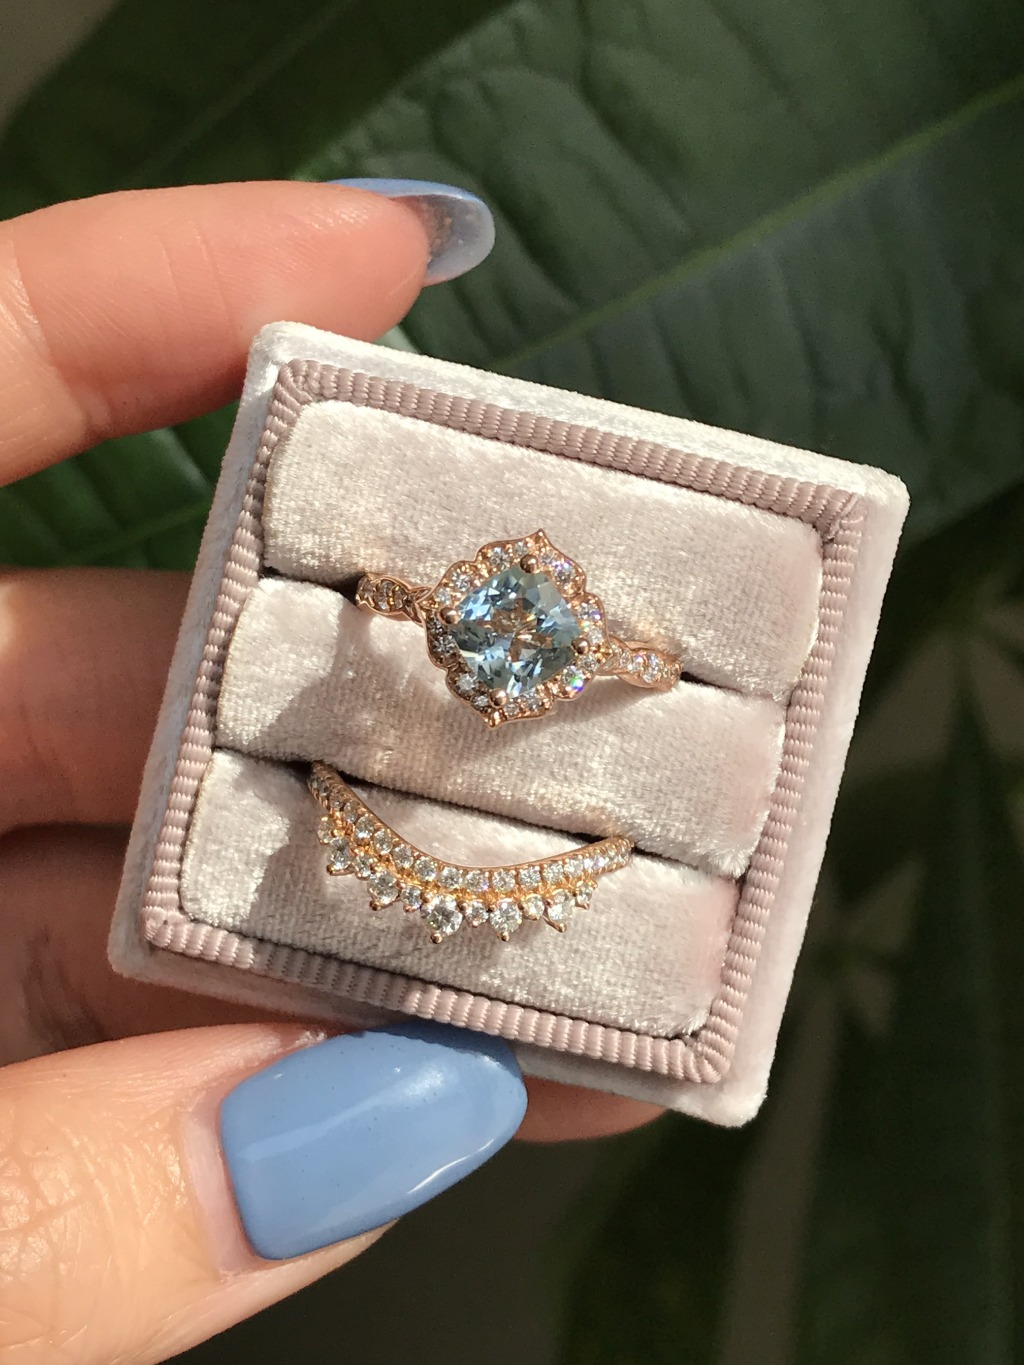 This bridal set showcases a mini vintage floral engagement ring with a 6x6mm cushion cut aquamarine set in 14k Rose Gold. To complete